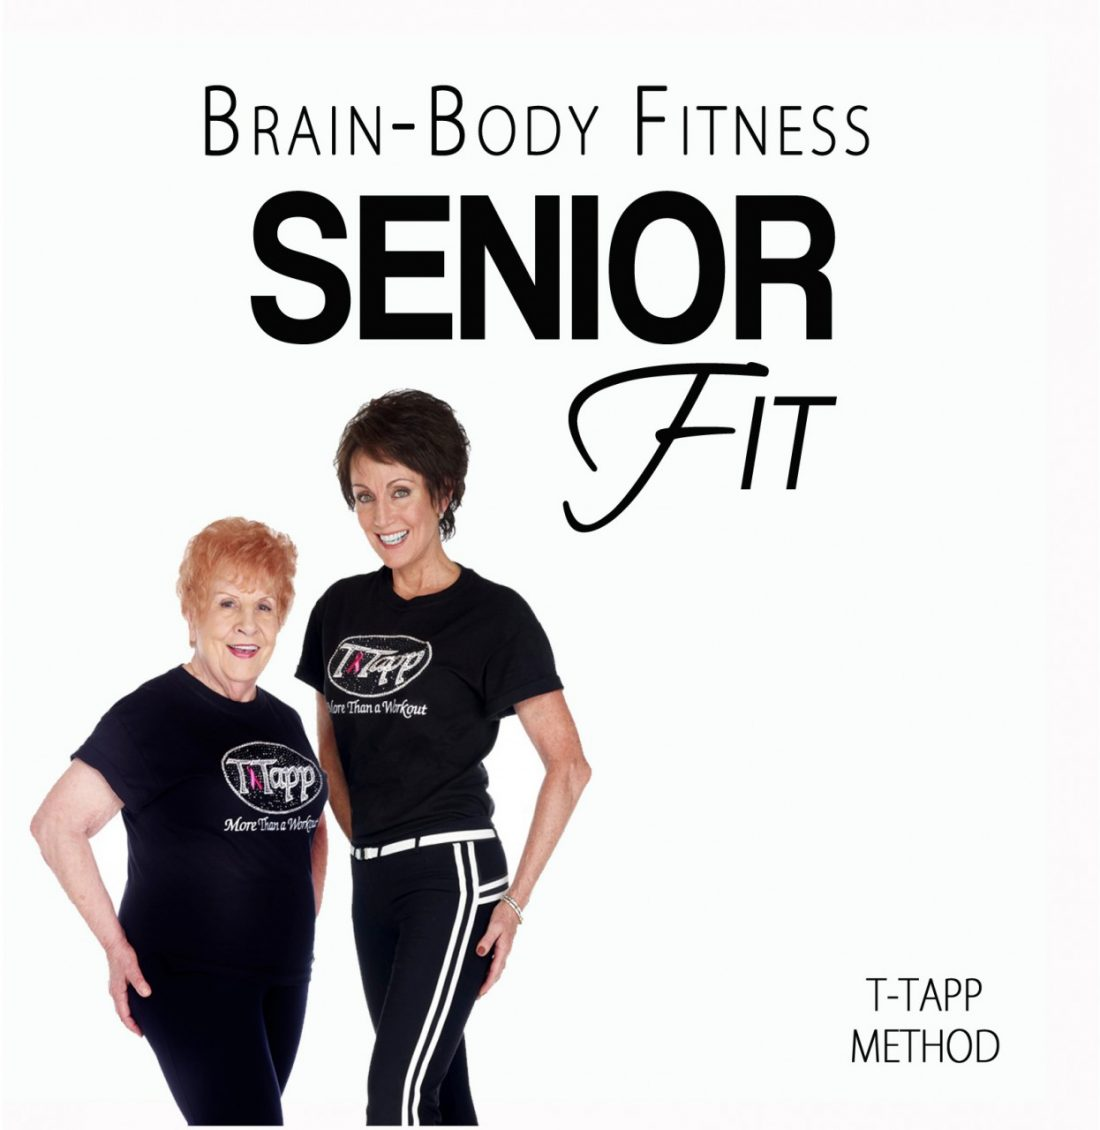 Fitness Dvd Seniors: T-Tapp Deep Discount Tuesday: $10 Off Senior Fit Exercise DVD